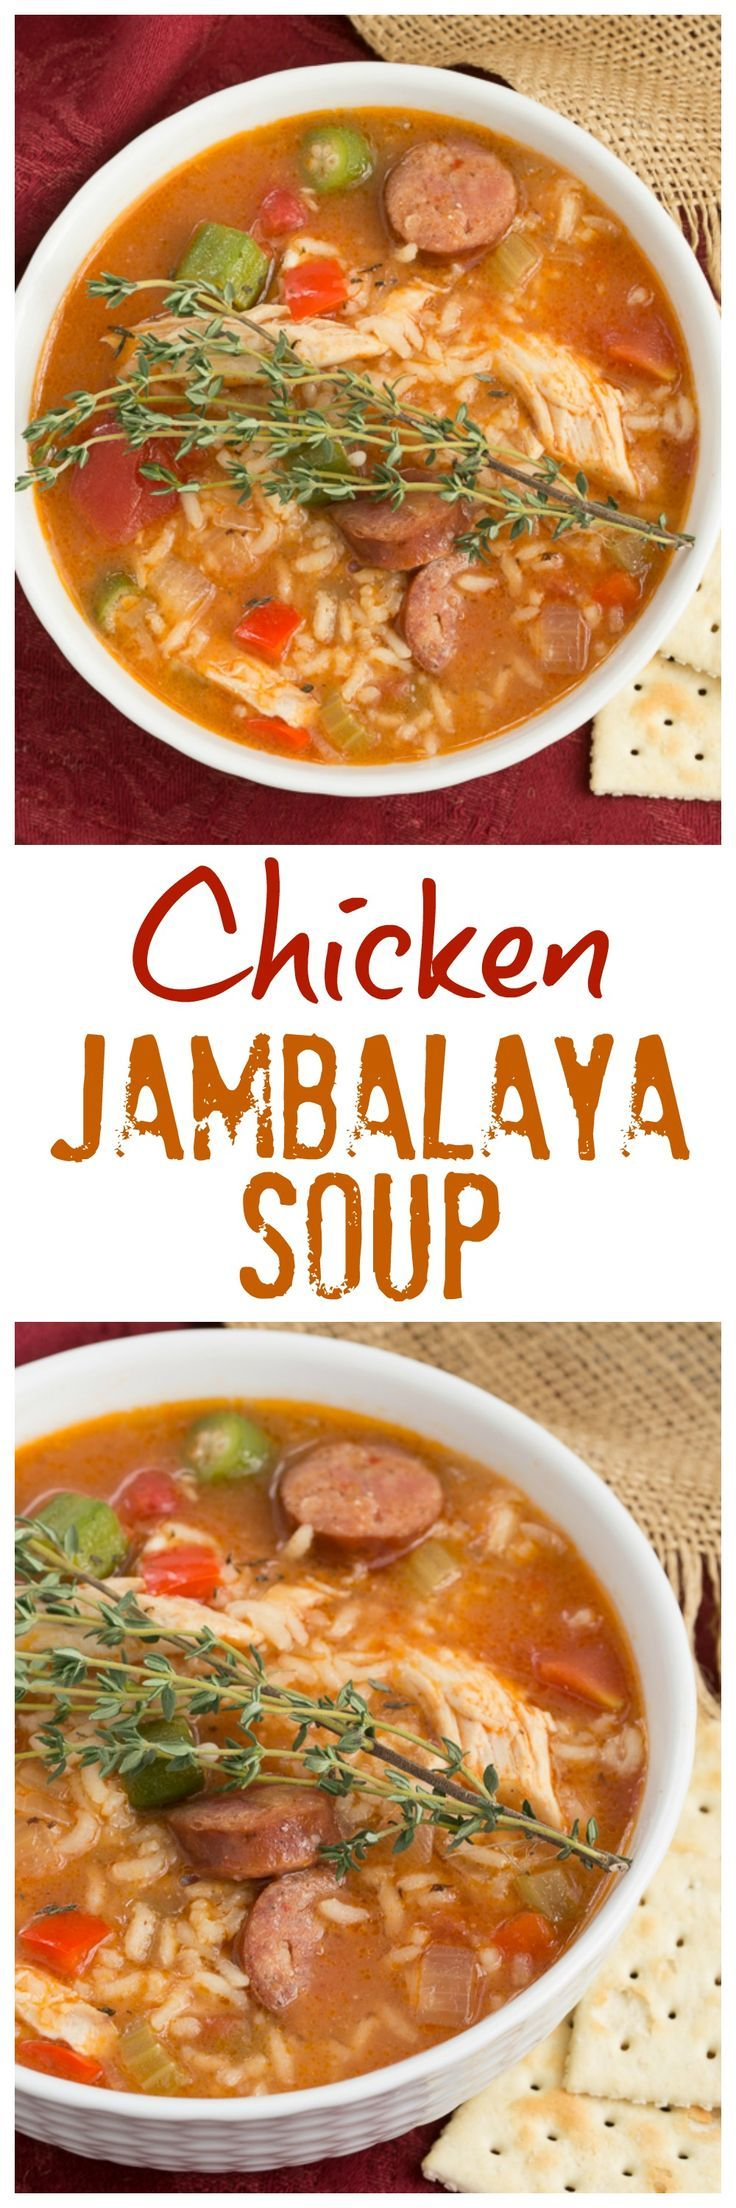 ChickenJambalaya Soup | Packed with terrific flavor from chicken, andouille sausage, rice and more! @lizzydo